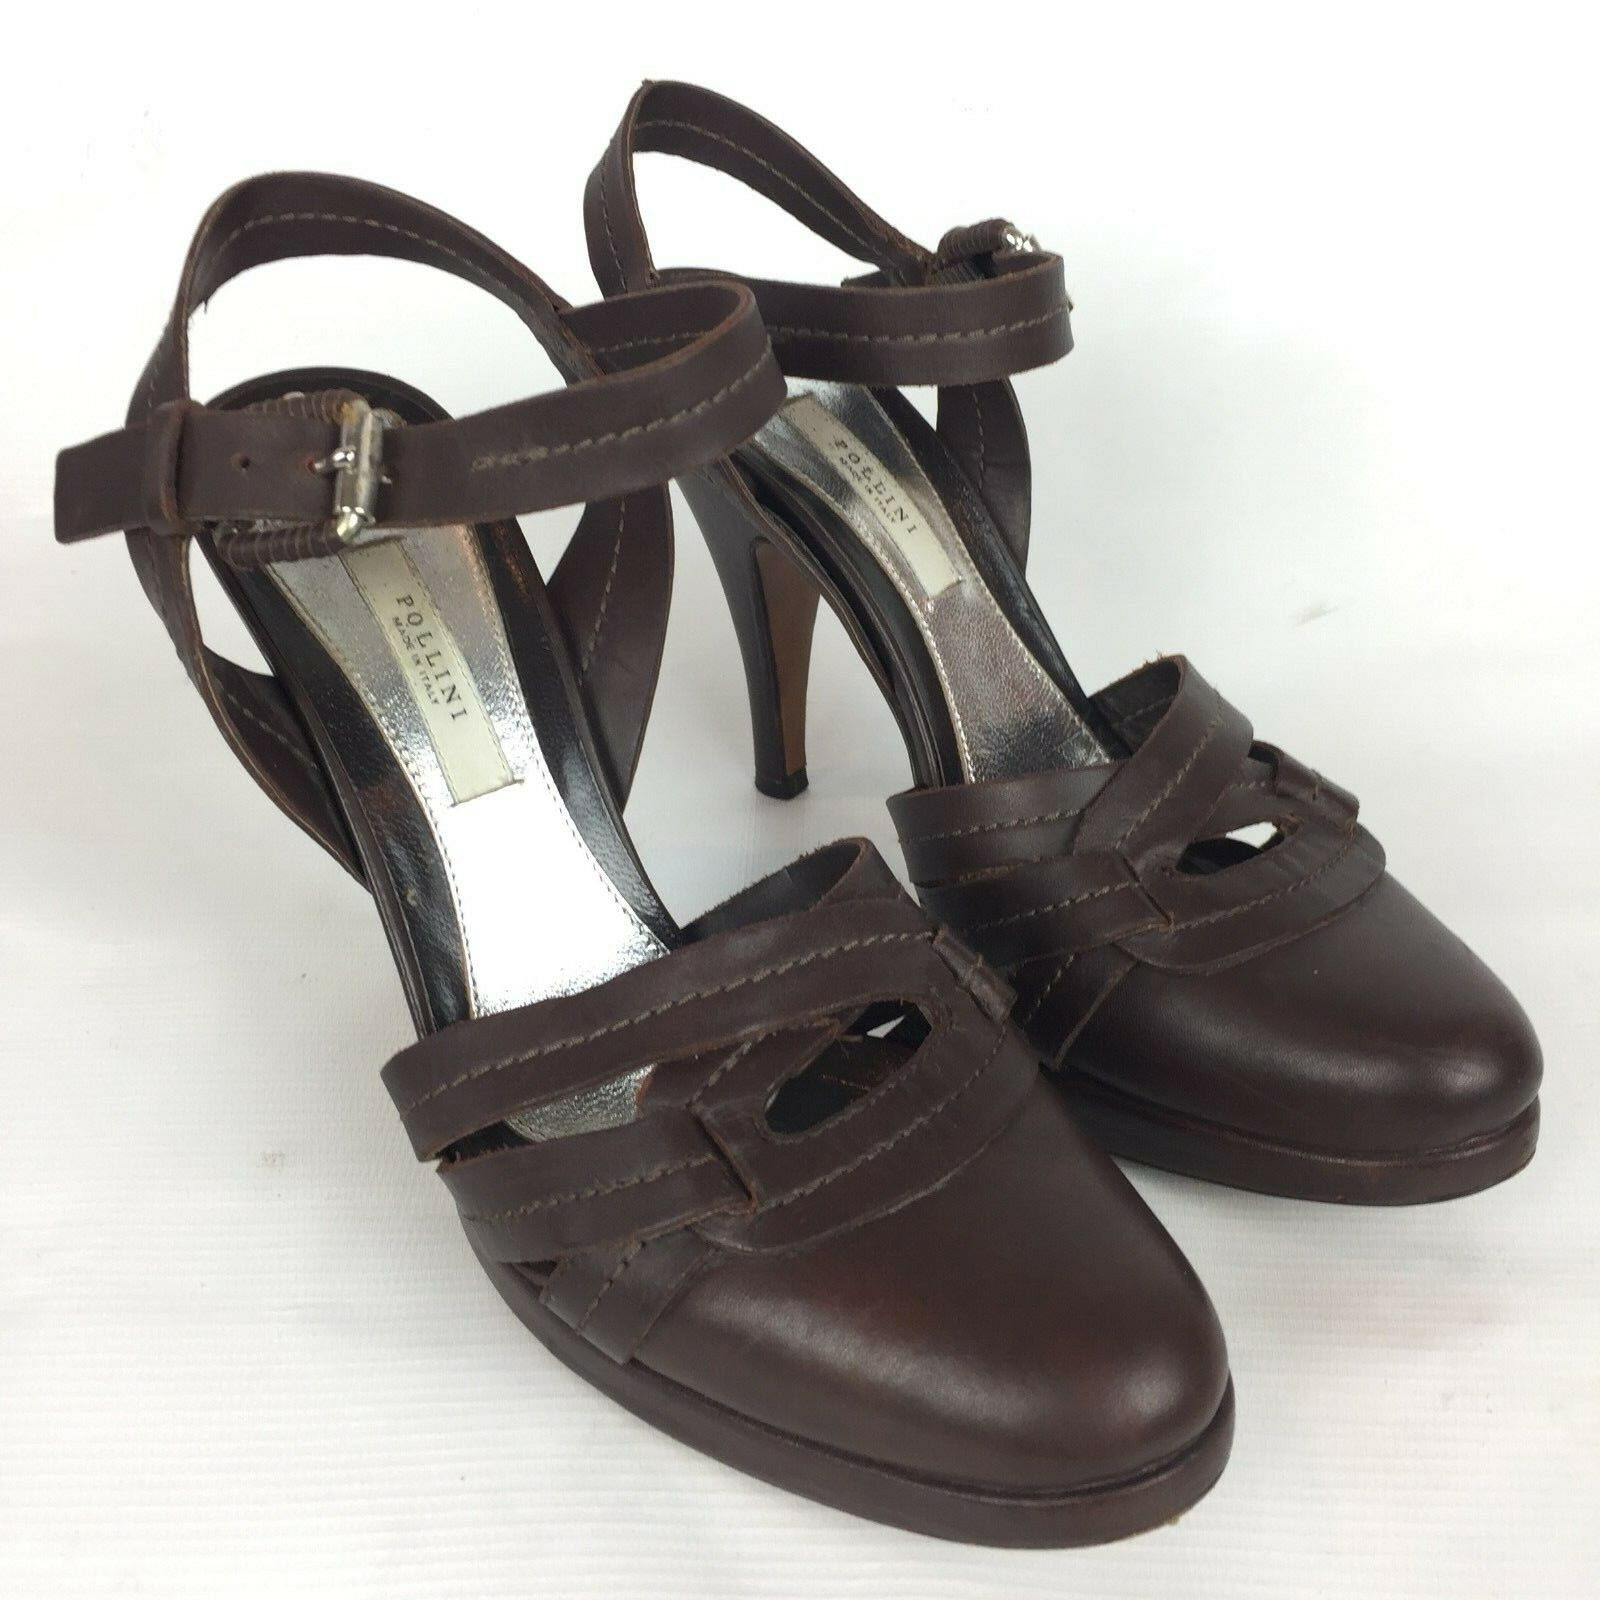 POLLINI  Size 7 37 Brown Leather Round Toe Heels Pumps  Vero Cuoio